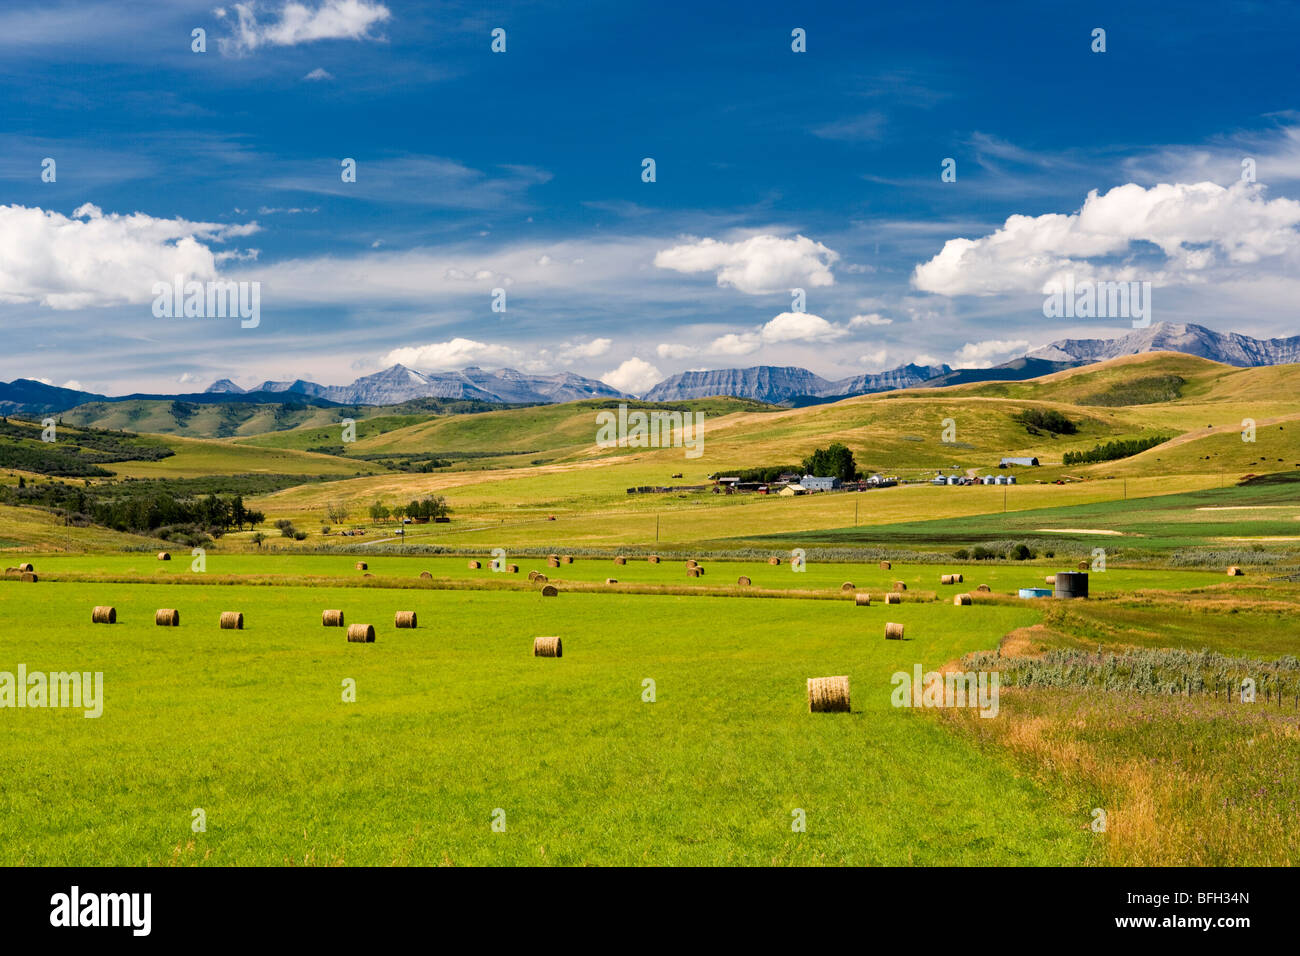 Farm and rolling hills, Longview, Alberta, Canada - Stock Image